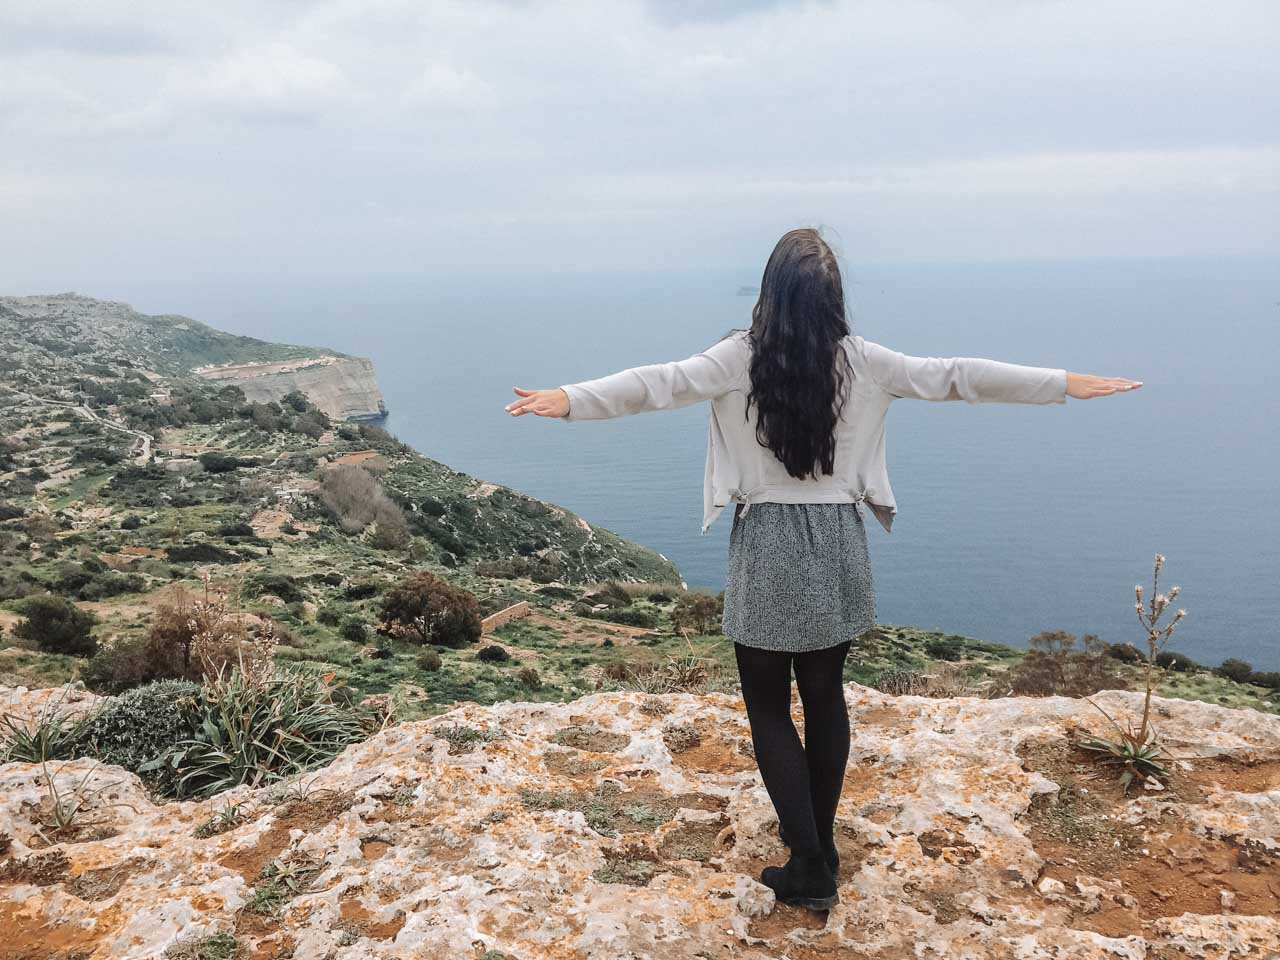 A girl standing close to the edge of the Dingli Cliffs, Malta